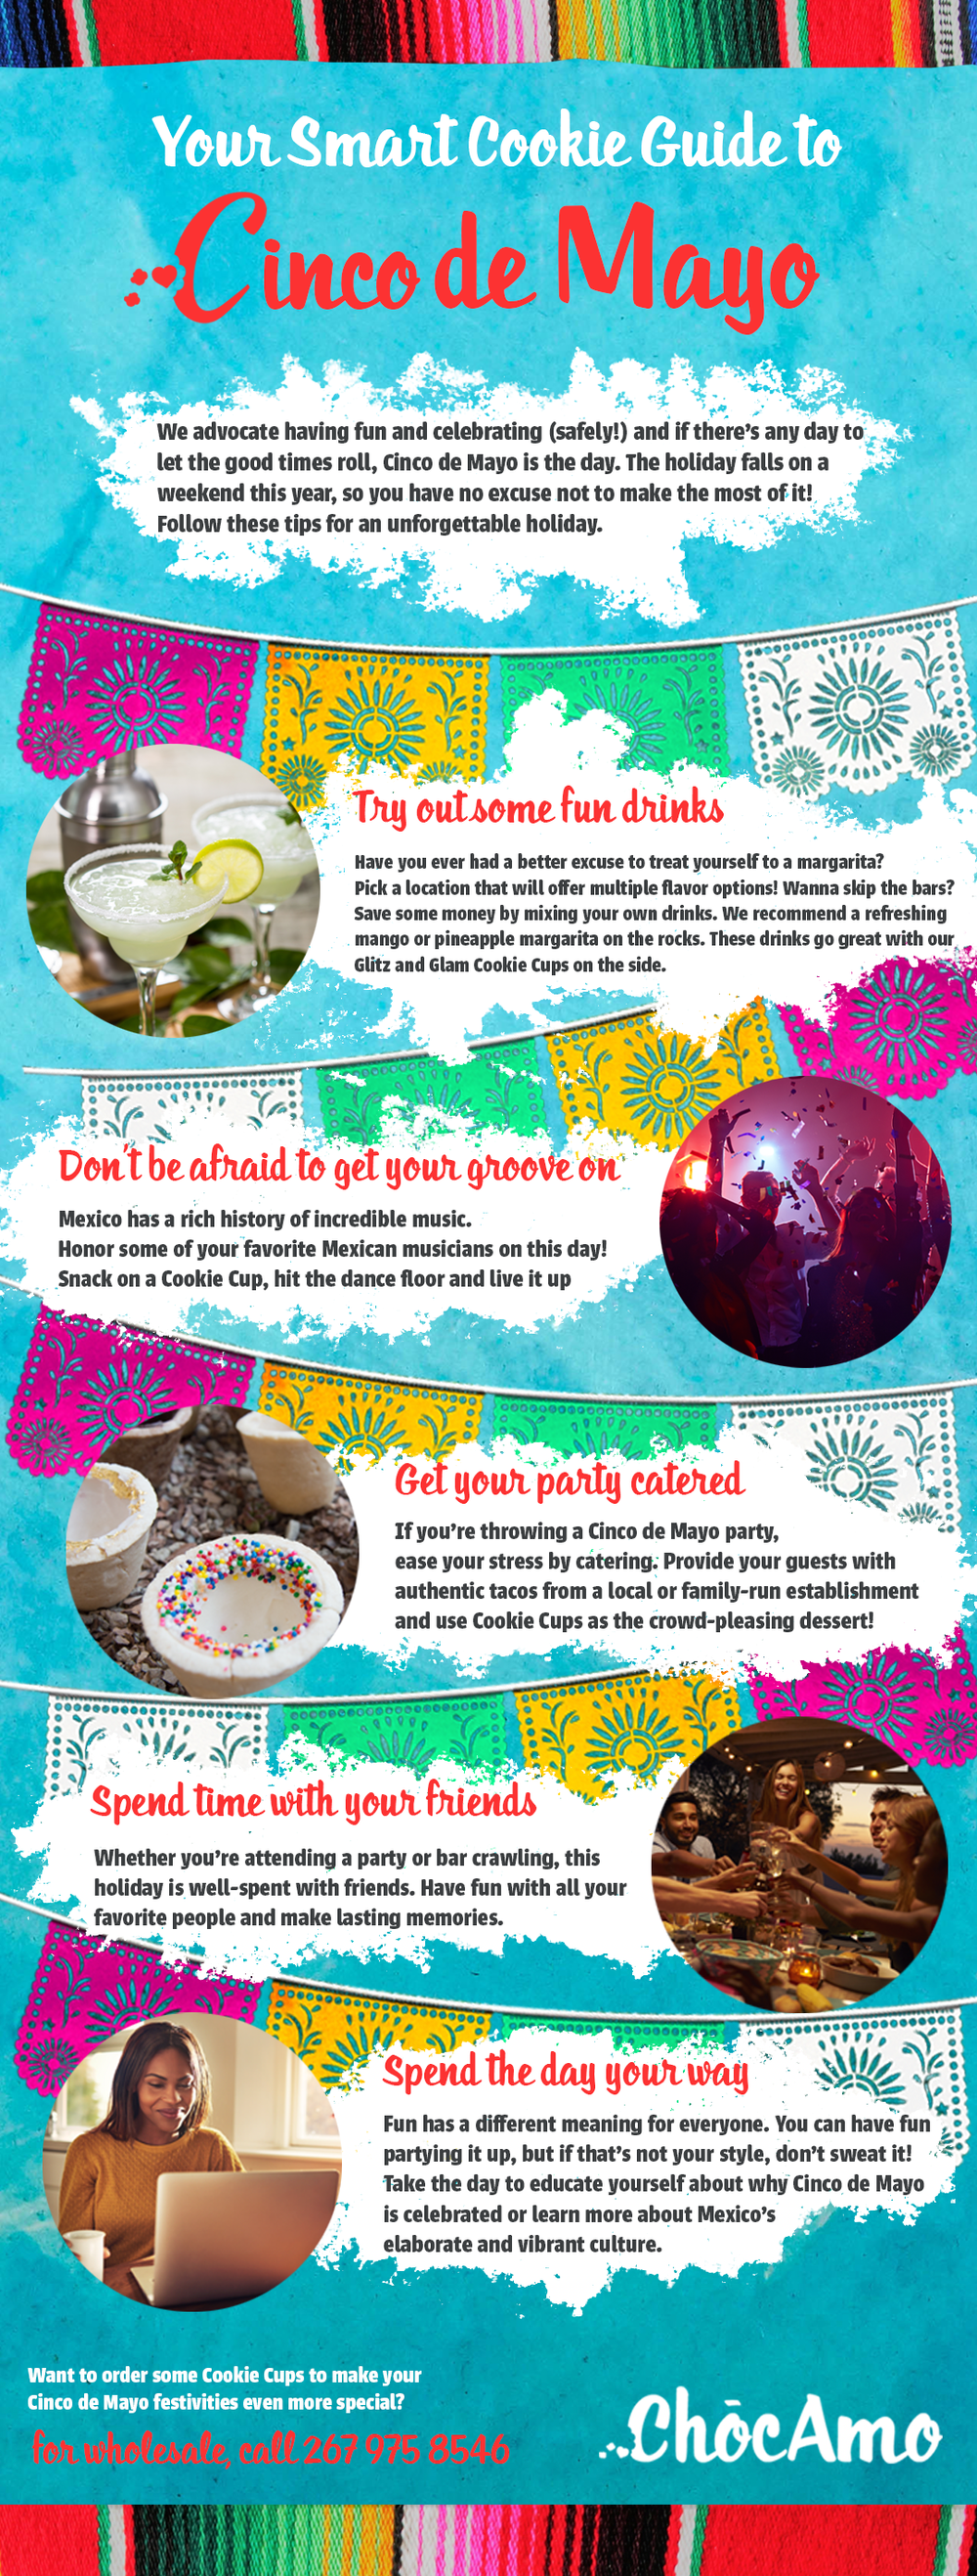 Chocamo_CincodeMayo_Infographic2.png